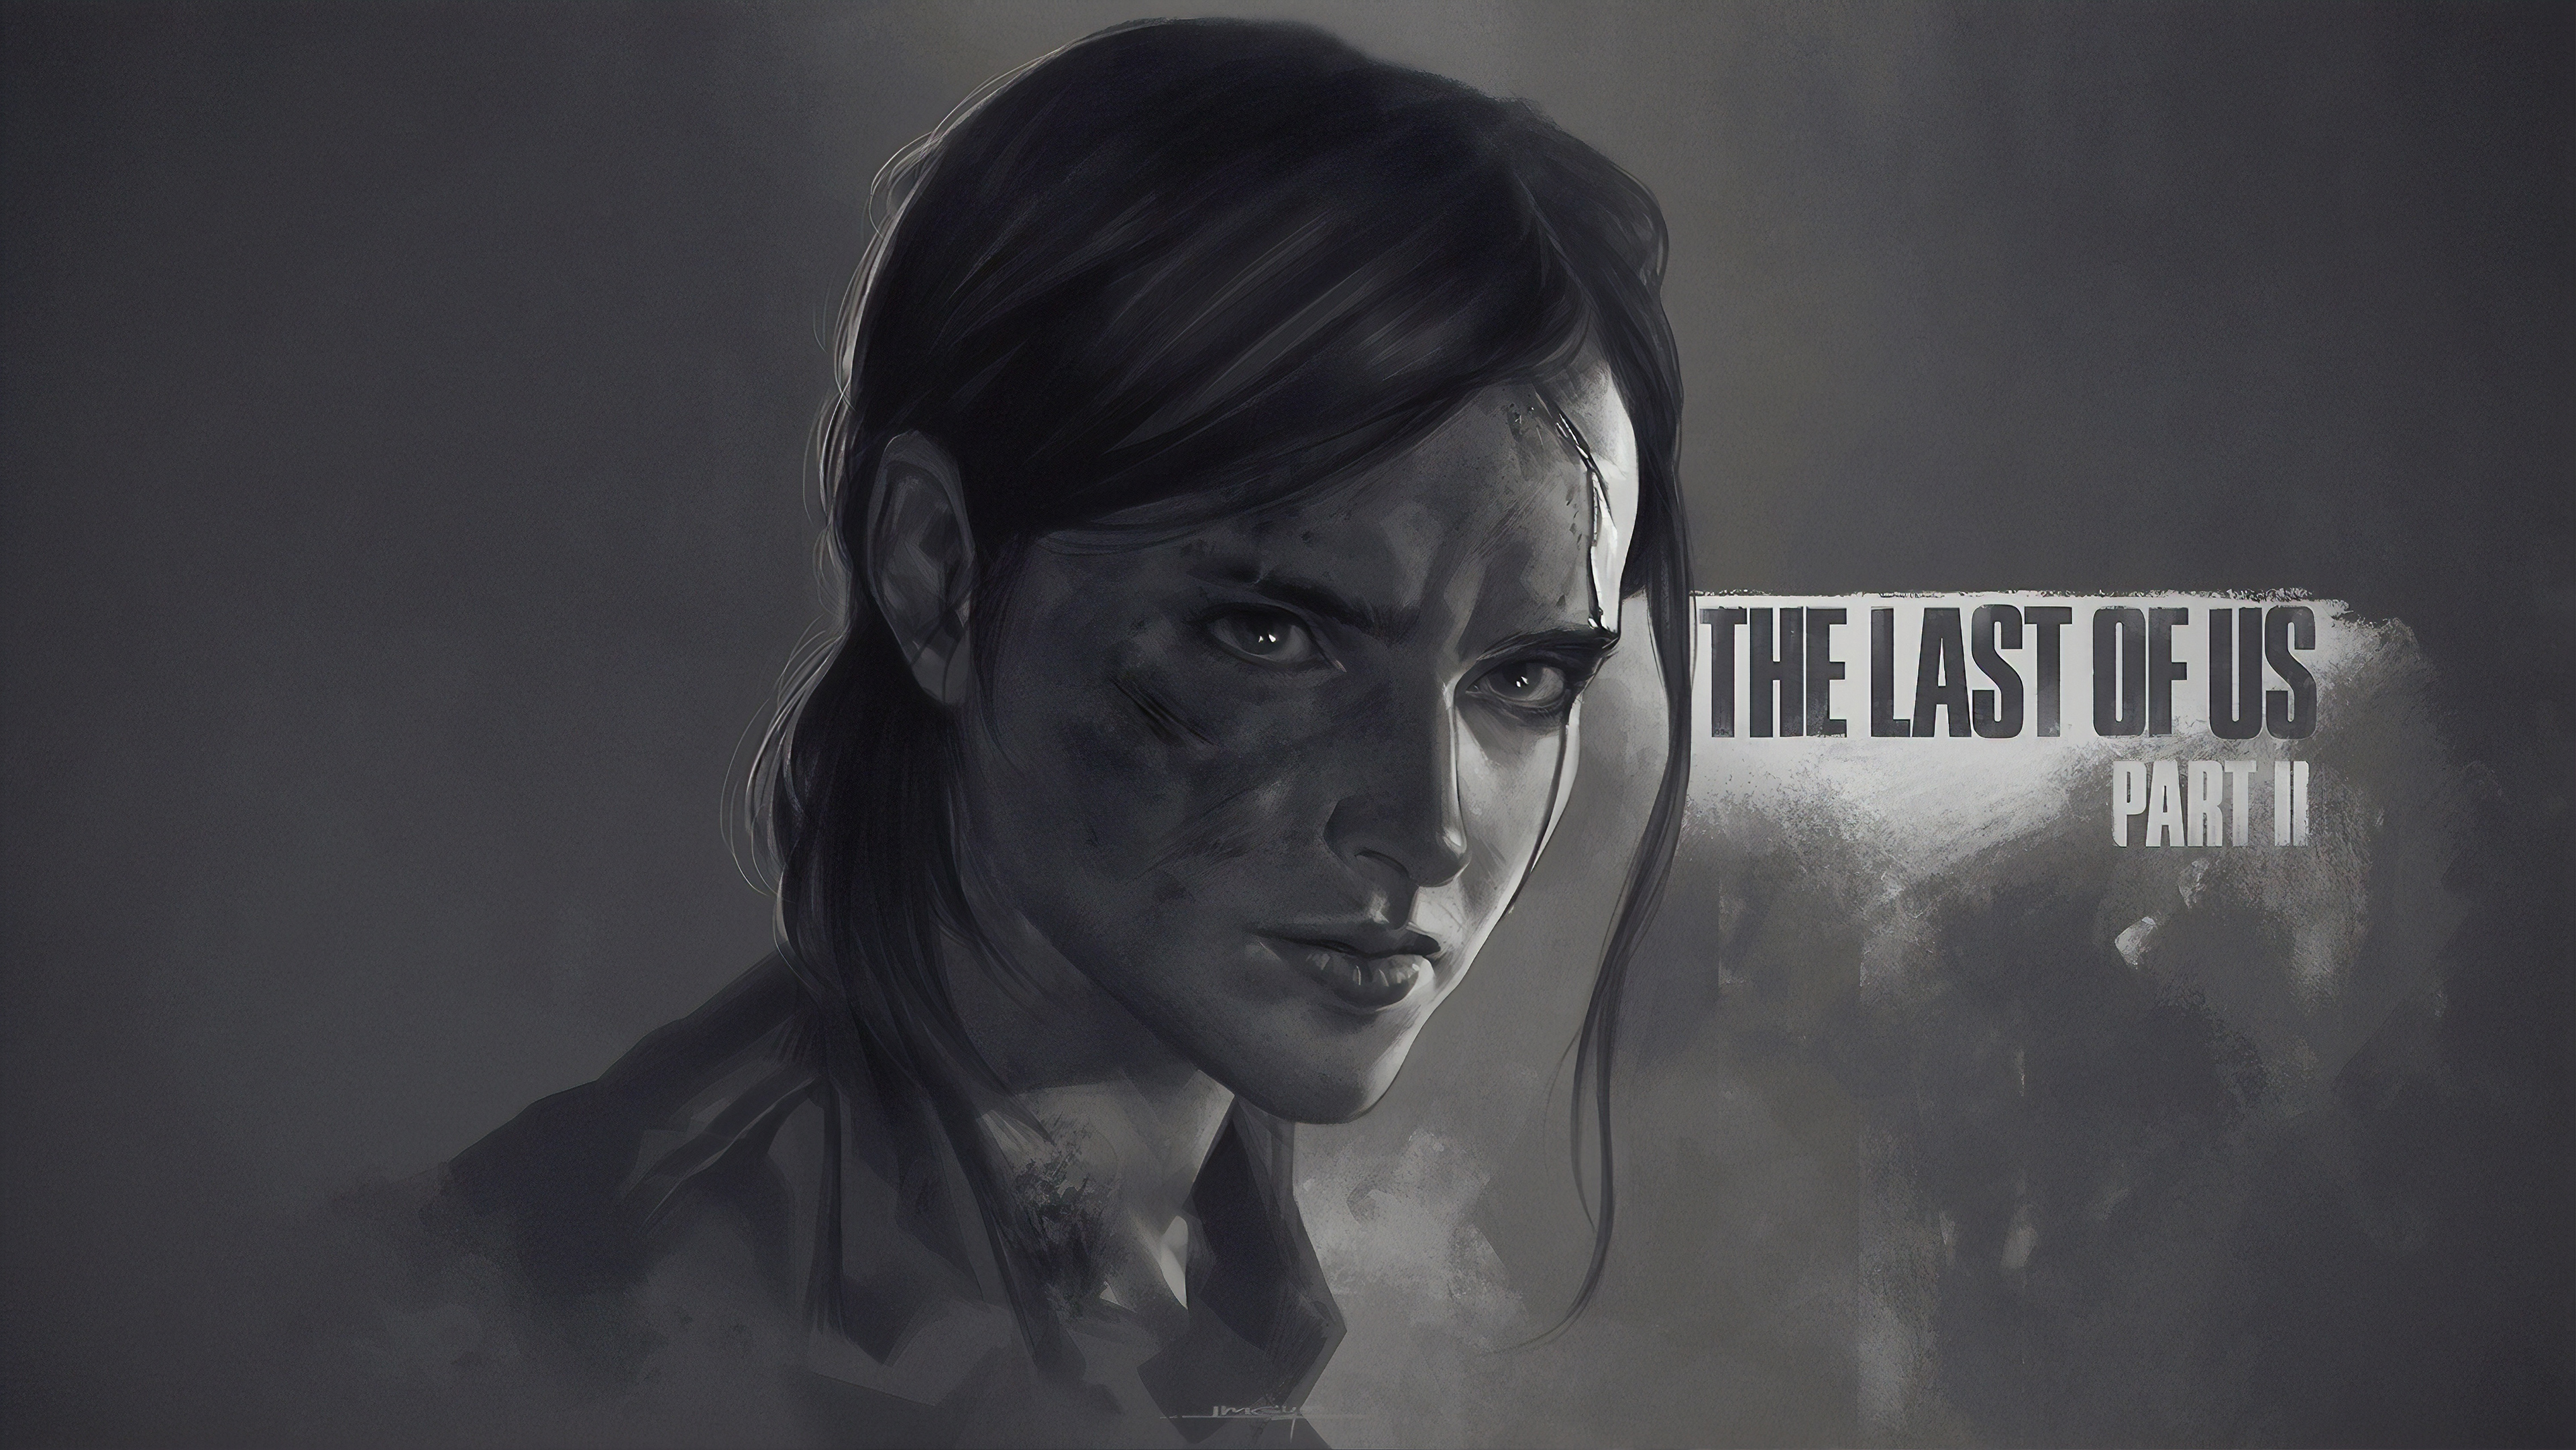 Ellie The Last Of Us Part 2 Wallpaper Hd Games 4k Wallpapers